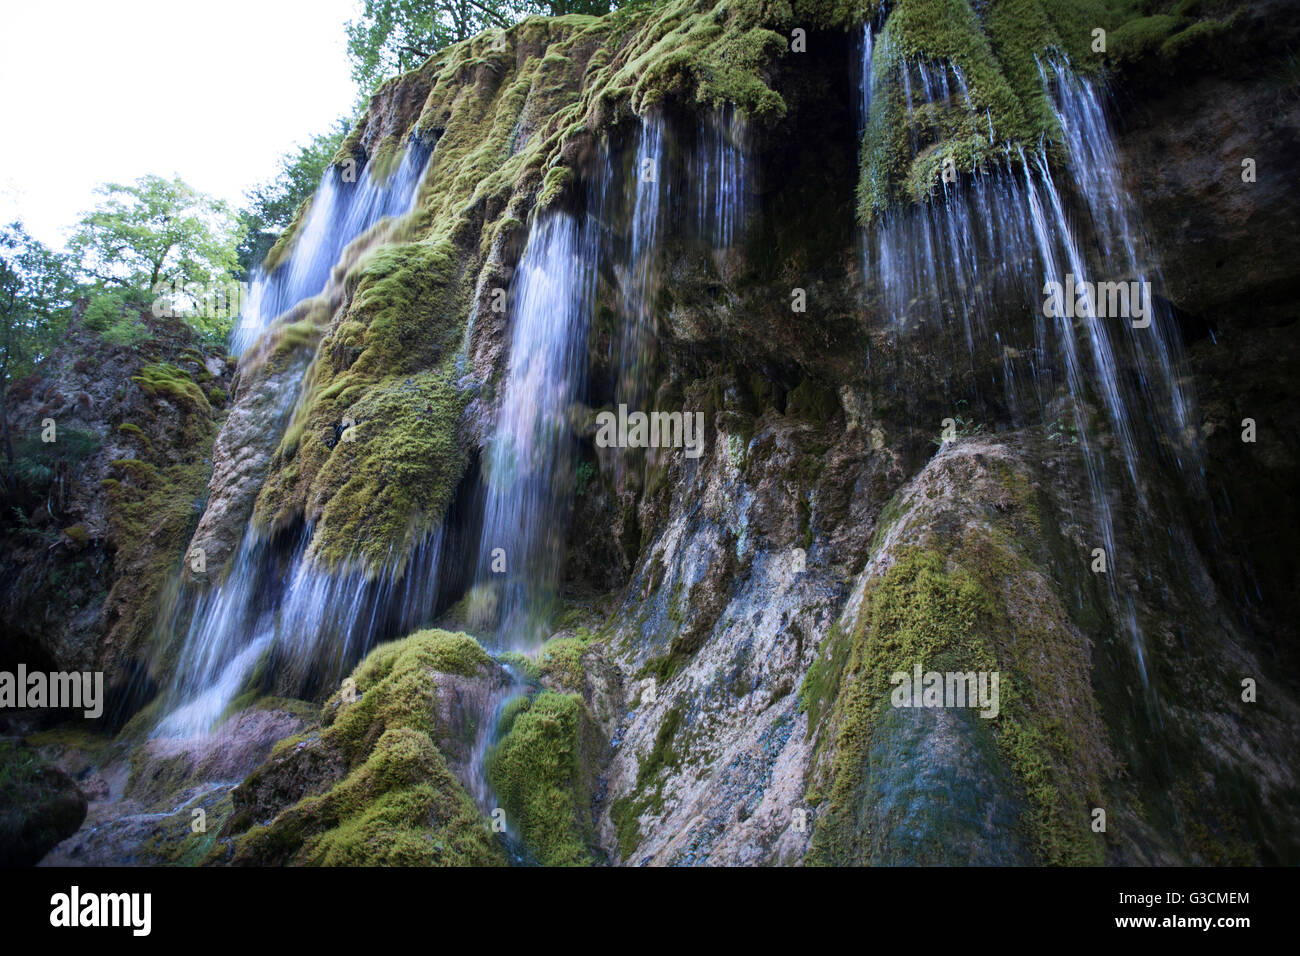 Schleier Waterfalls in summer, waterfall, spectacle of nature, experience, moss - Stock Image